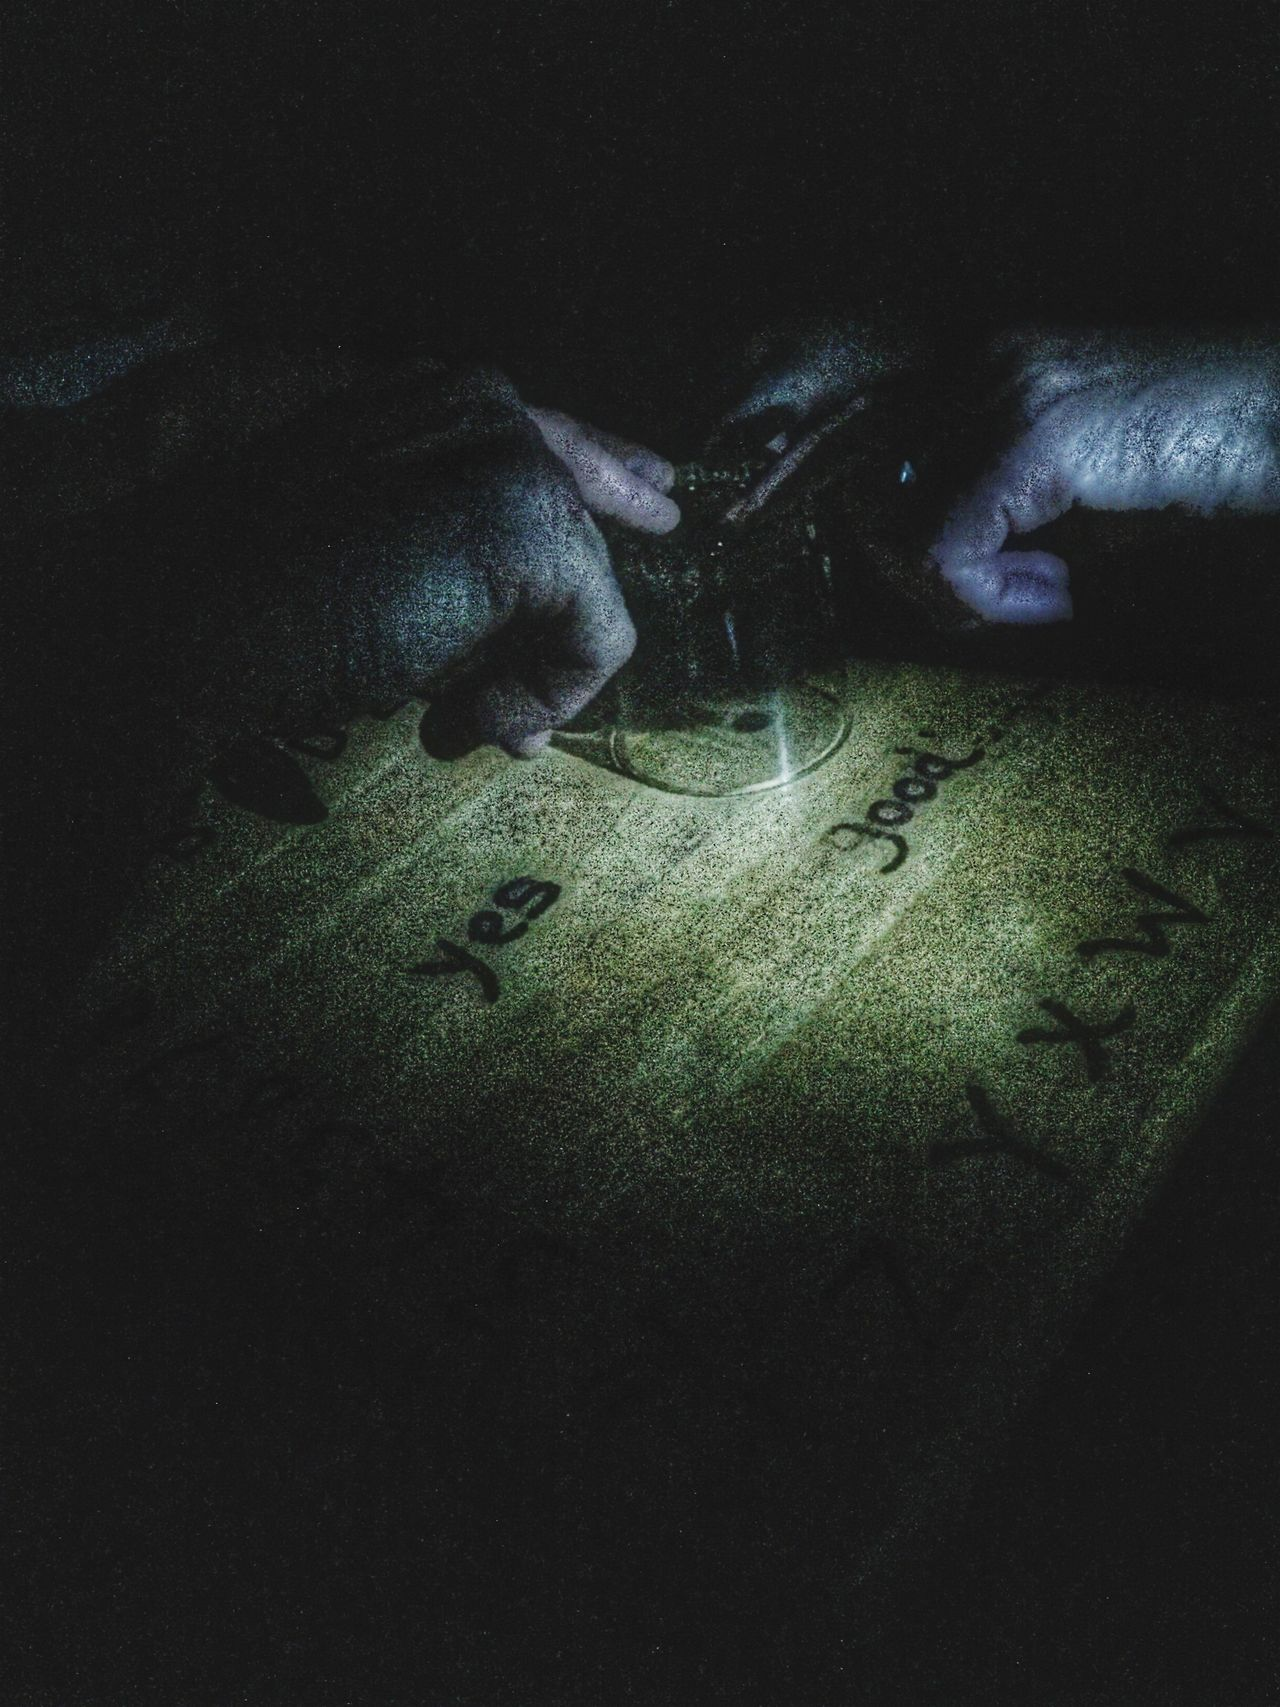 Haunted House Hauntedplaces Haunted Ouija Board  Ouija Ouijastuff The Magic Mission Magic